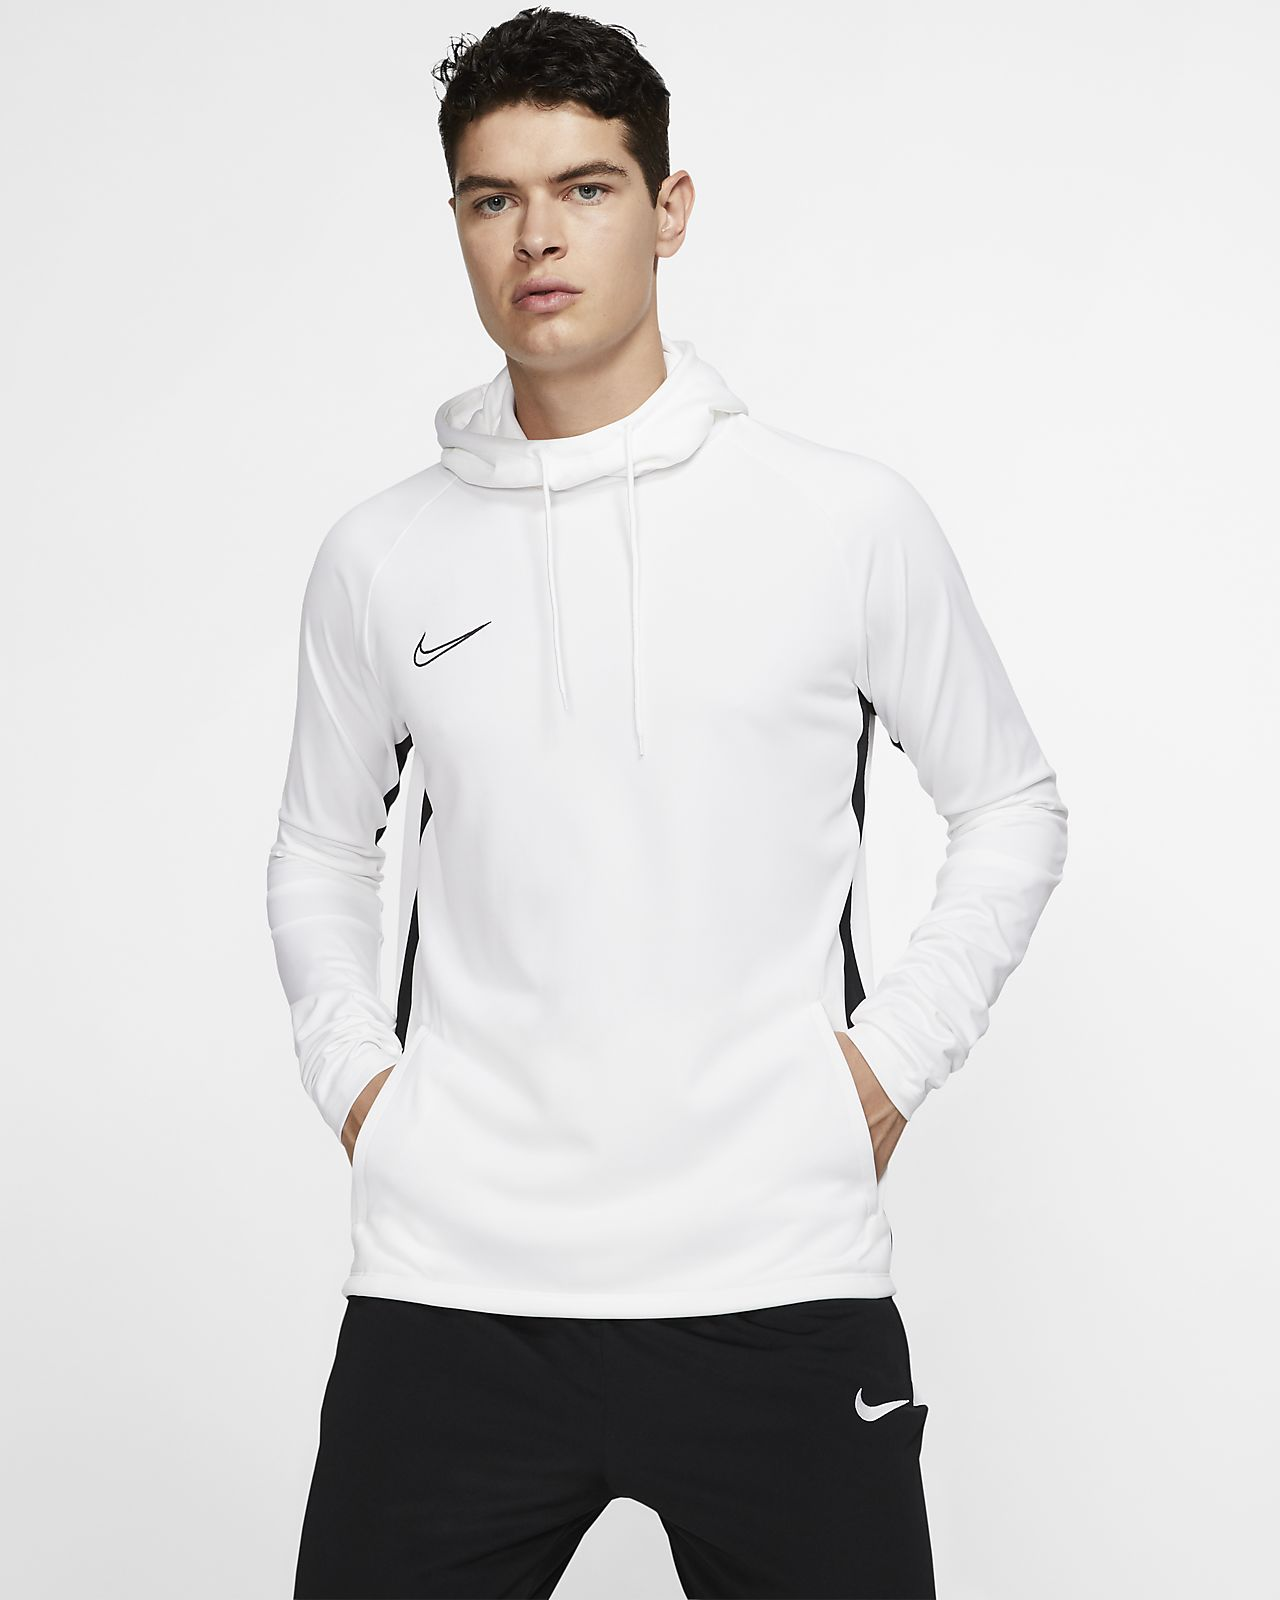 6152b18d Nike Dri-FIT Academy Men's Soccer Pullover Hoodie. Nike.com